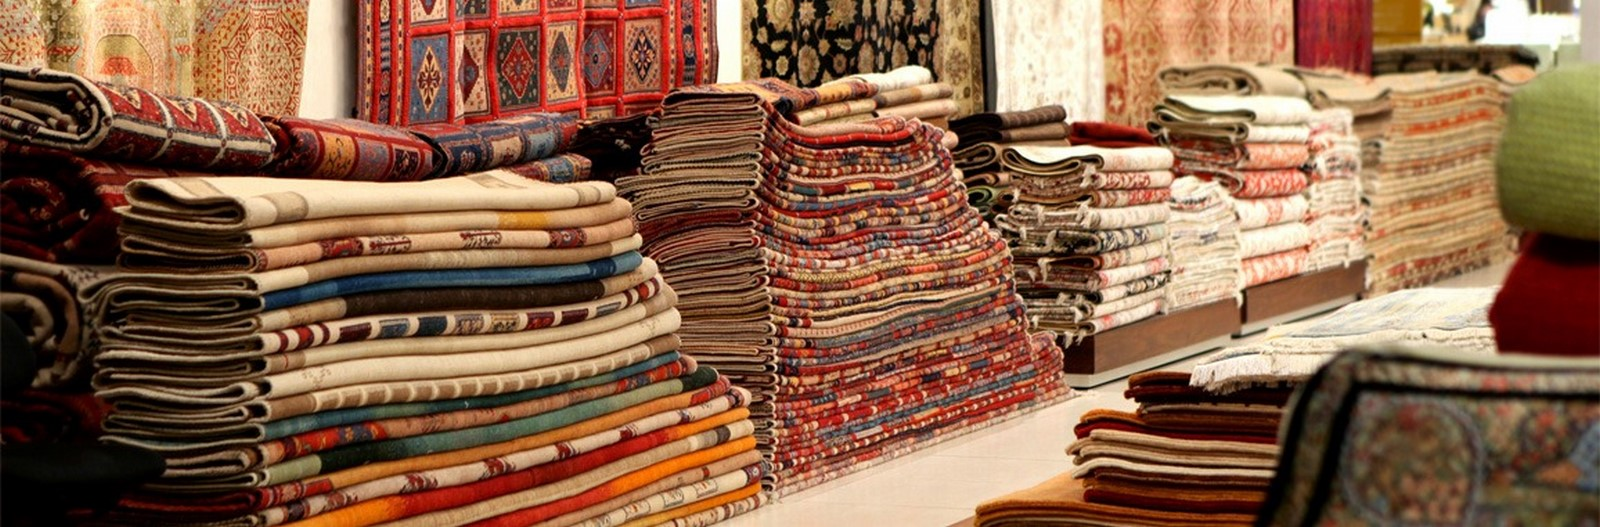 10 Ways to style rugs in your home! - Sheet5